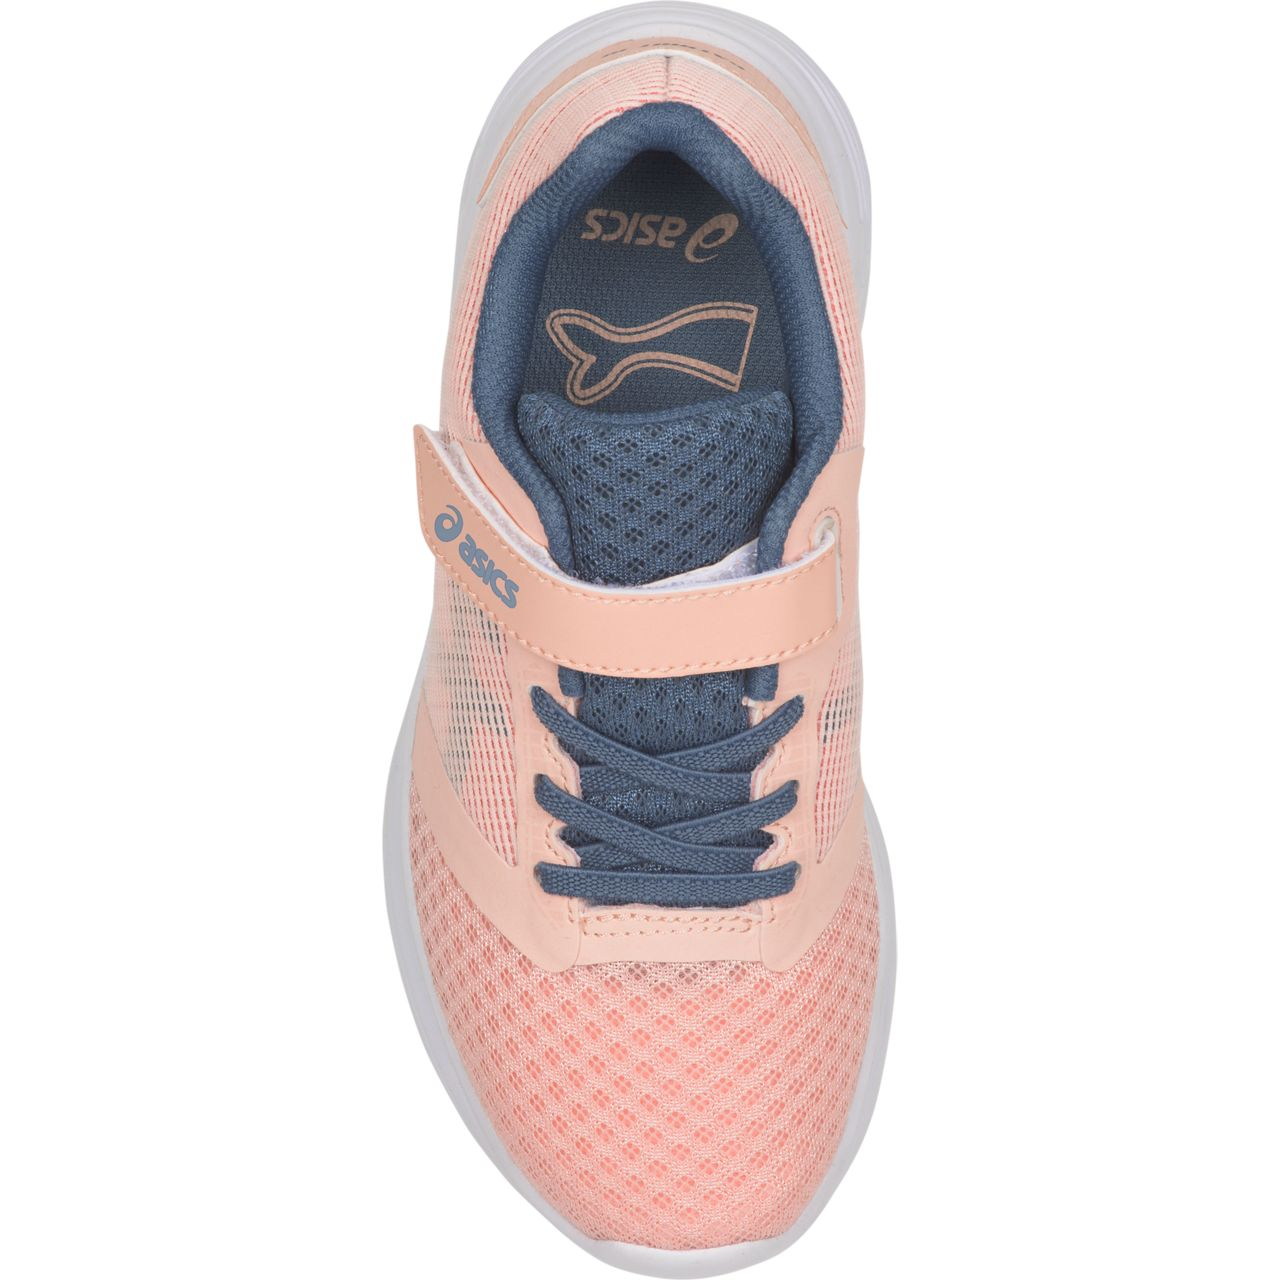 a4b93dab35 Asics Patriot 10 PS Baked Pink/Steel Blue